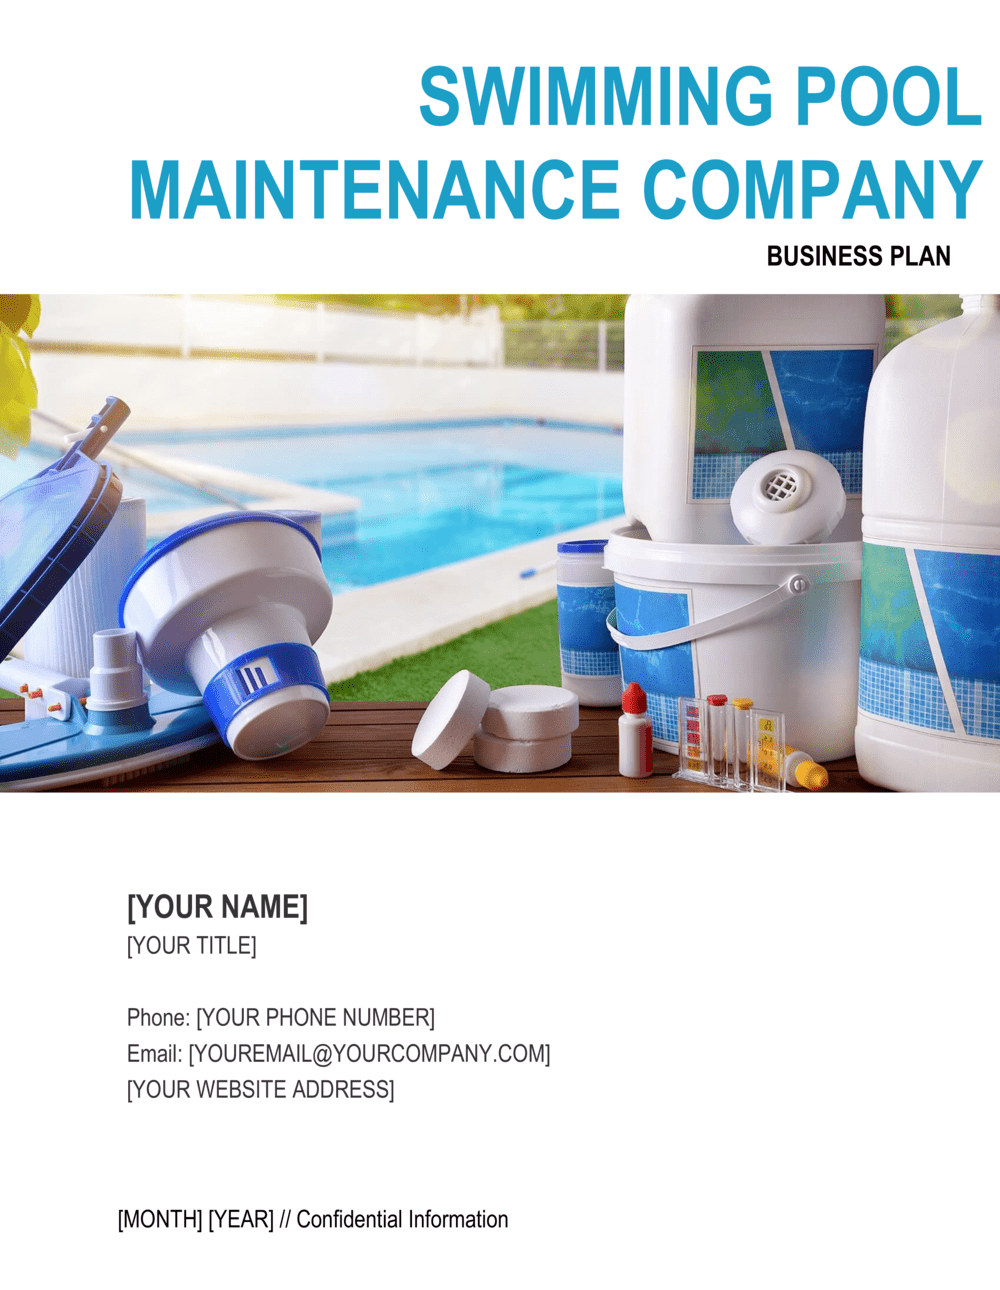 Business-in-a-Box's Swimming Pool Maintenance Company Business Plan Template